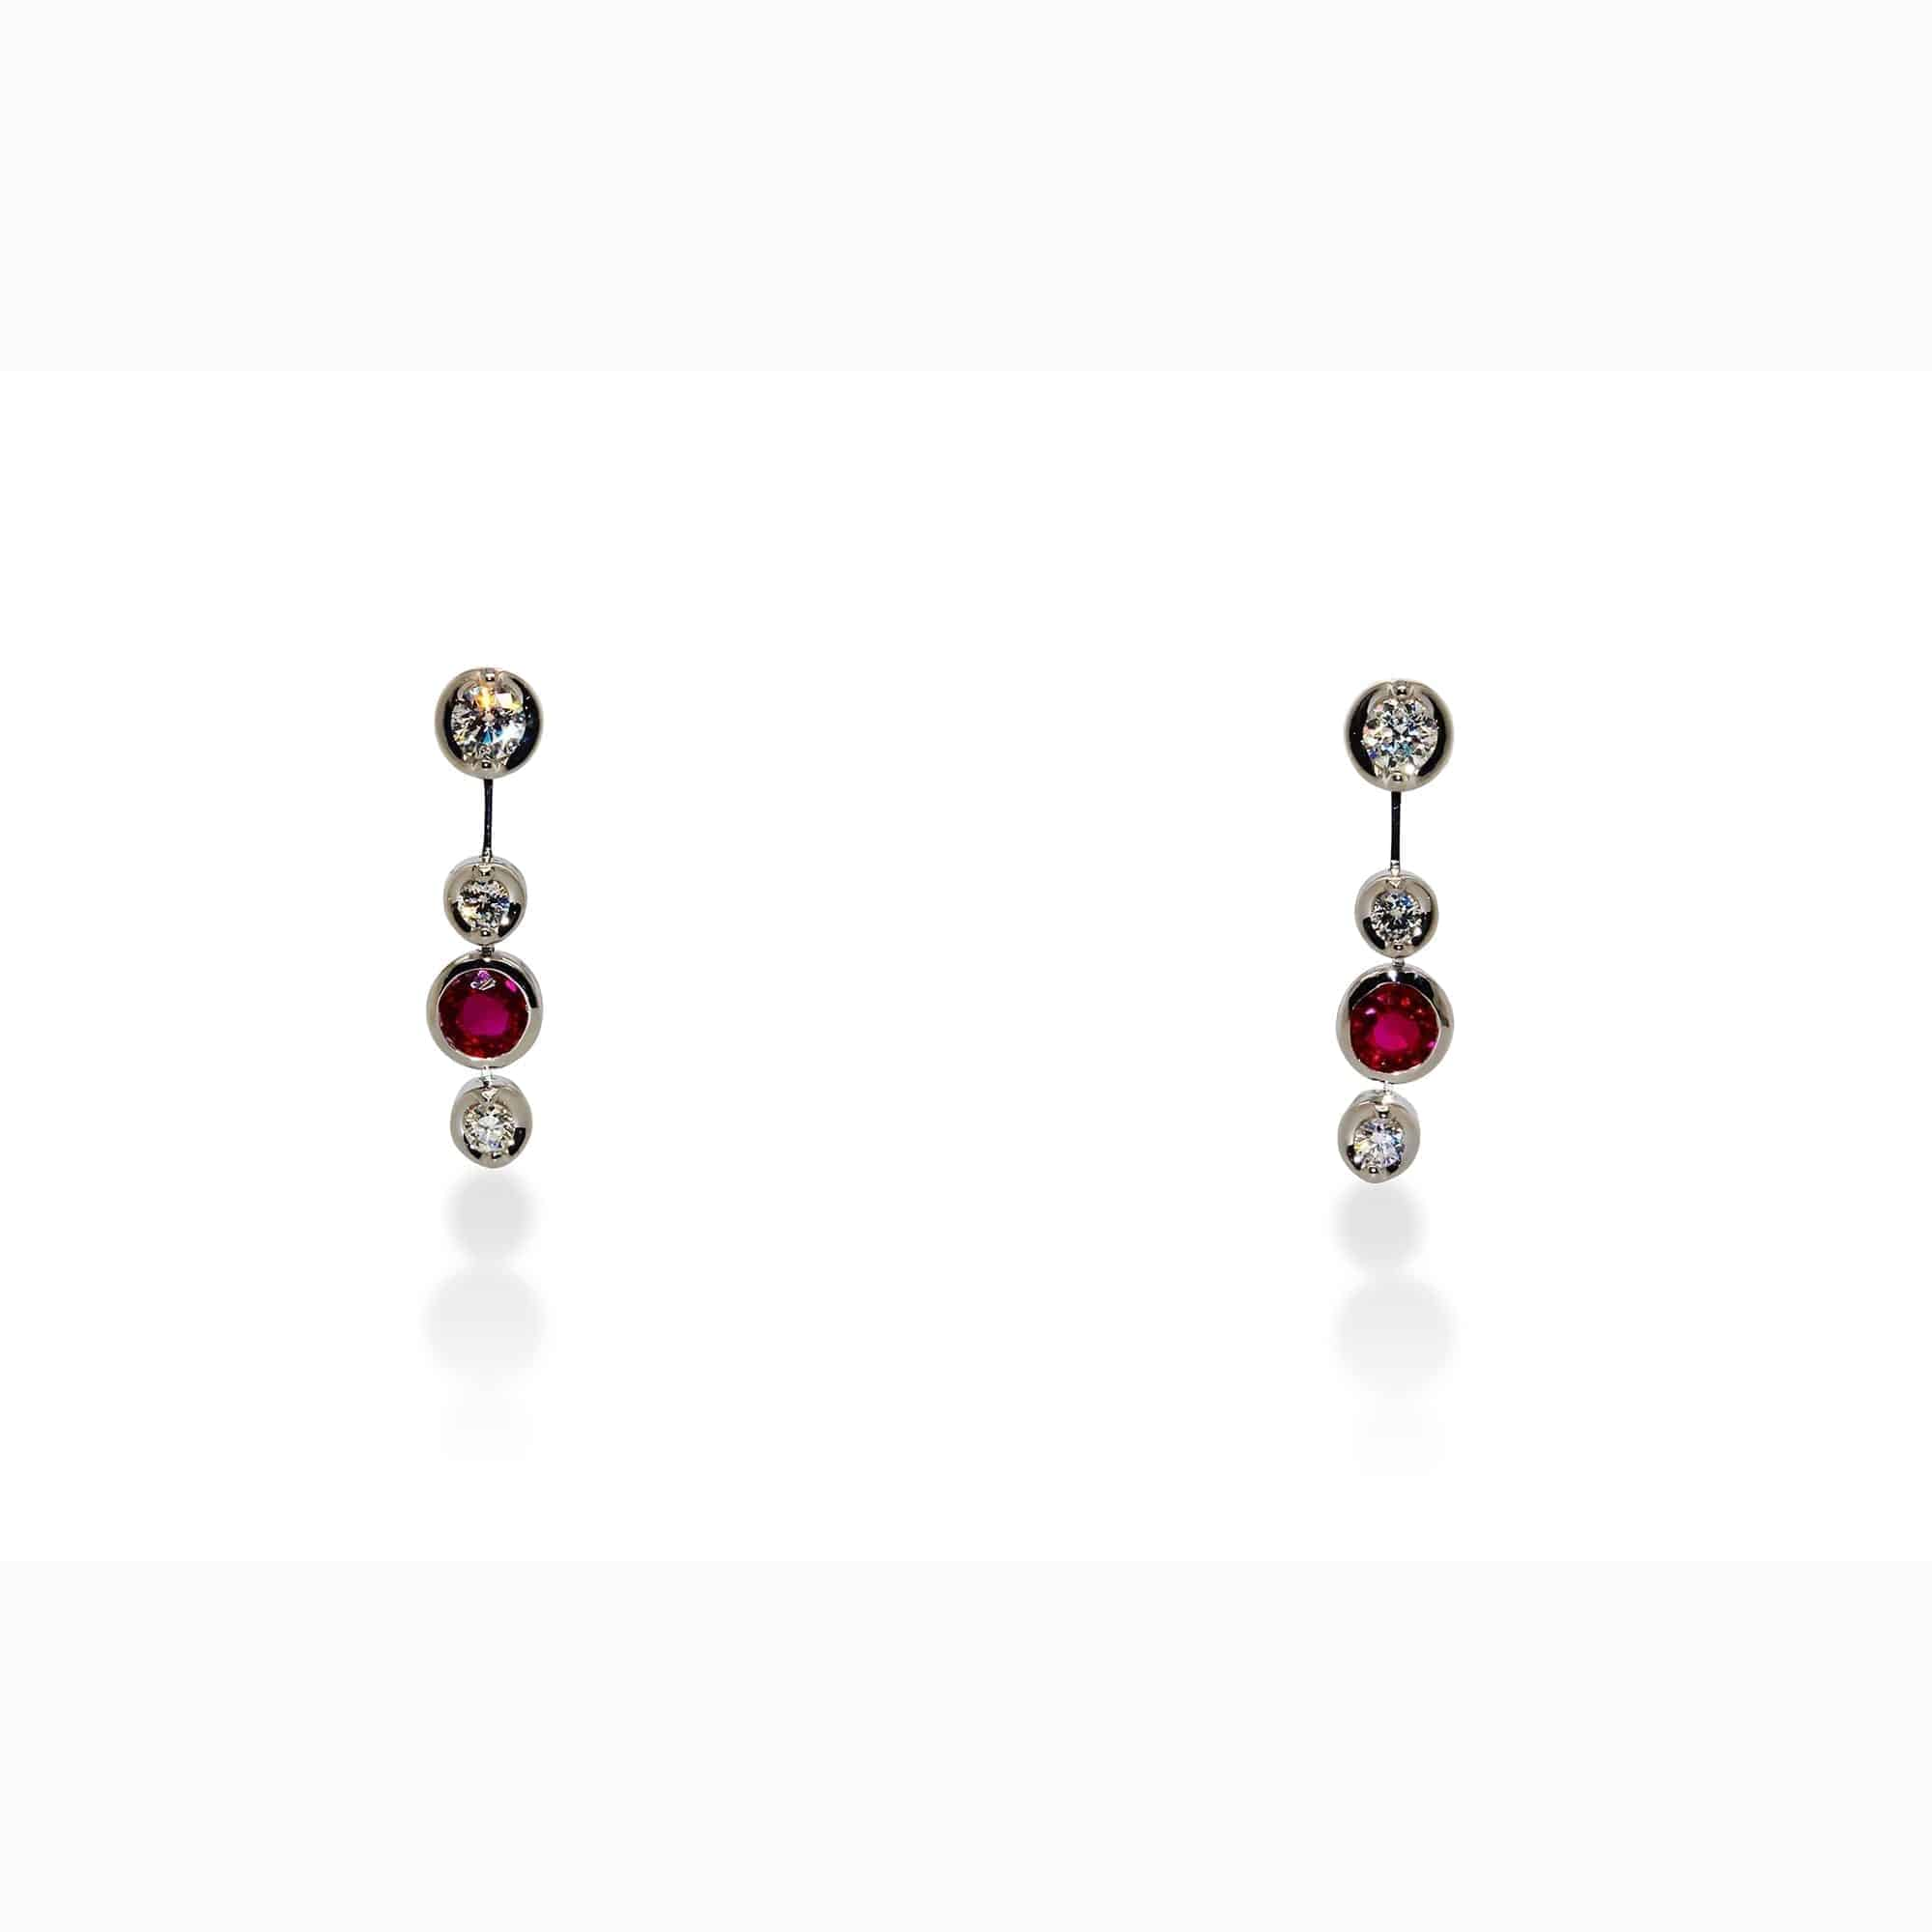 ronan campbell 18k white gold trio plus one ruby diamond drop earrings designyard contemporary jewellery gallery dublin ireland